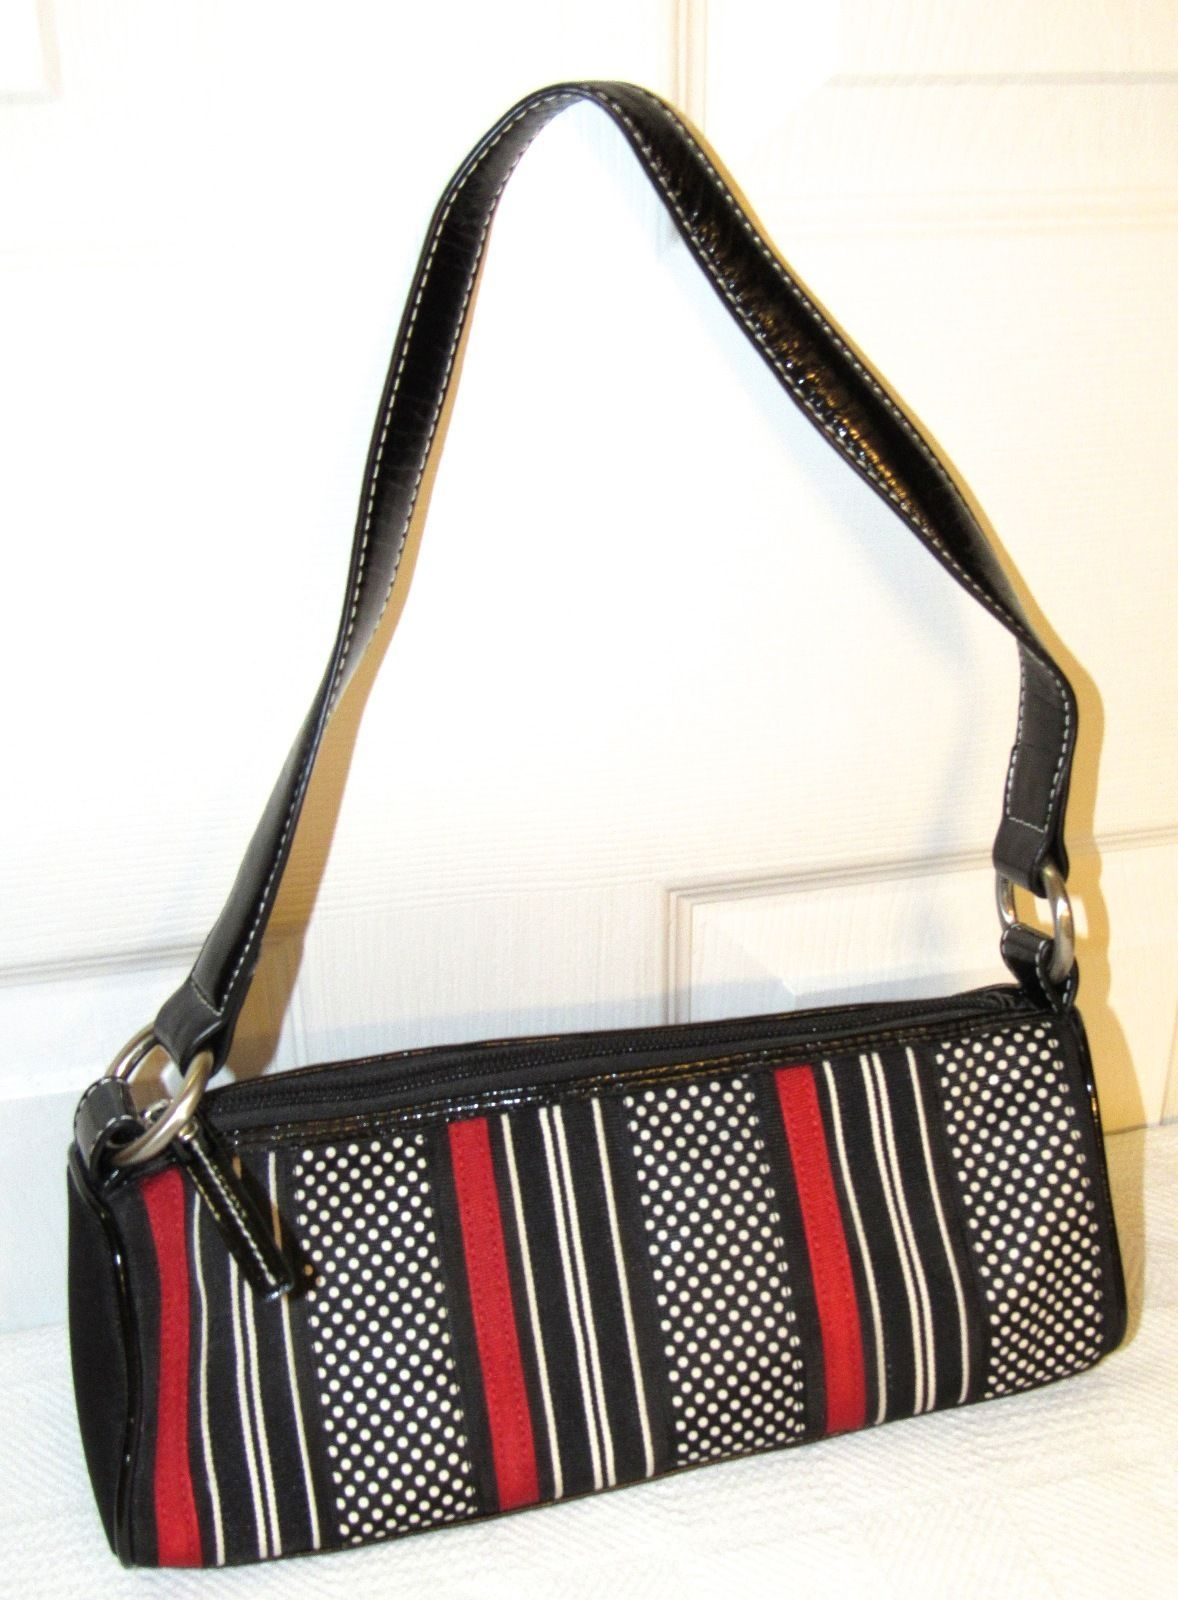 Talbots Black/Red/White Polka Dot Grosgrain Ribbon Baguette Leather/Canvas Bag